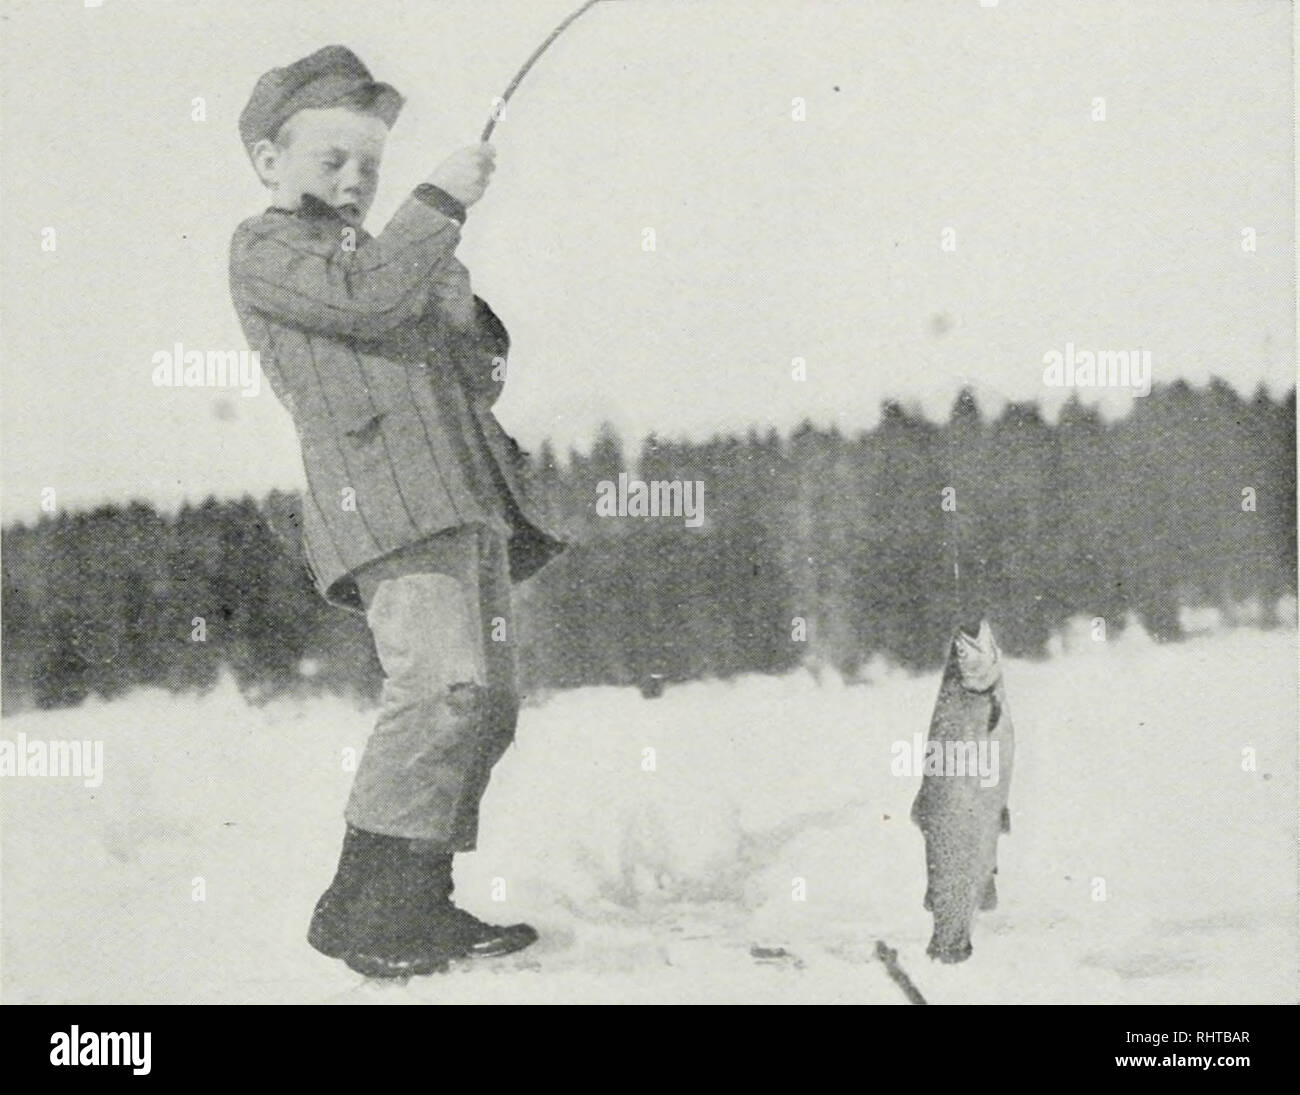 . Biennial report, Montana Game and Fish Commission, State of Montana. Montana Fish and Game Commission; Game protection; Wildlife conservation; Fisheries. TiSH And Game Commission. Bill Peck Catching Four Pound Trout. were of poor quality. Near the close of the season, as an experiment, at two of the lakes, a few thousand eggs were placed in hatching bas- kets and held until eyed before taking to the hatchery. These eggs turned out very much better, convincing me, as I had before thought, that the eggs must be eyed at the spawning stations to secure the best results. At Fish Lake, near Stryke Stock Photo